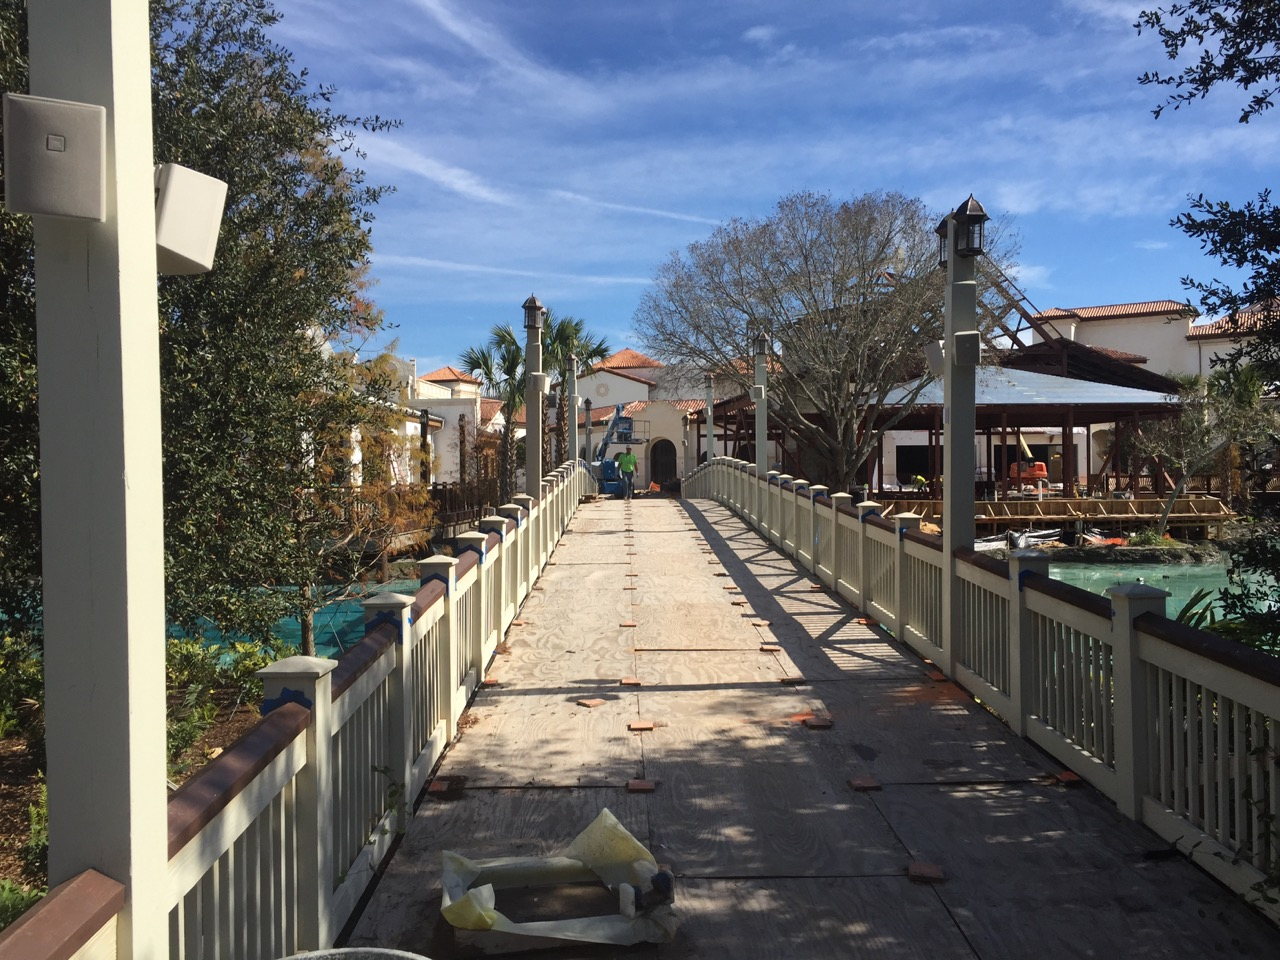 Here is a bridge that will connect some of the construction to the Morimoto dining area. Essentially, this bridge is a replacement to what was the main bridge to Pleasure Island. Photo by J. Jeff Kober.